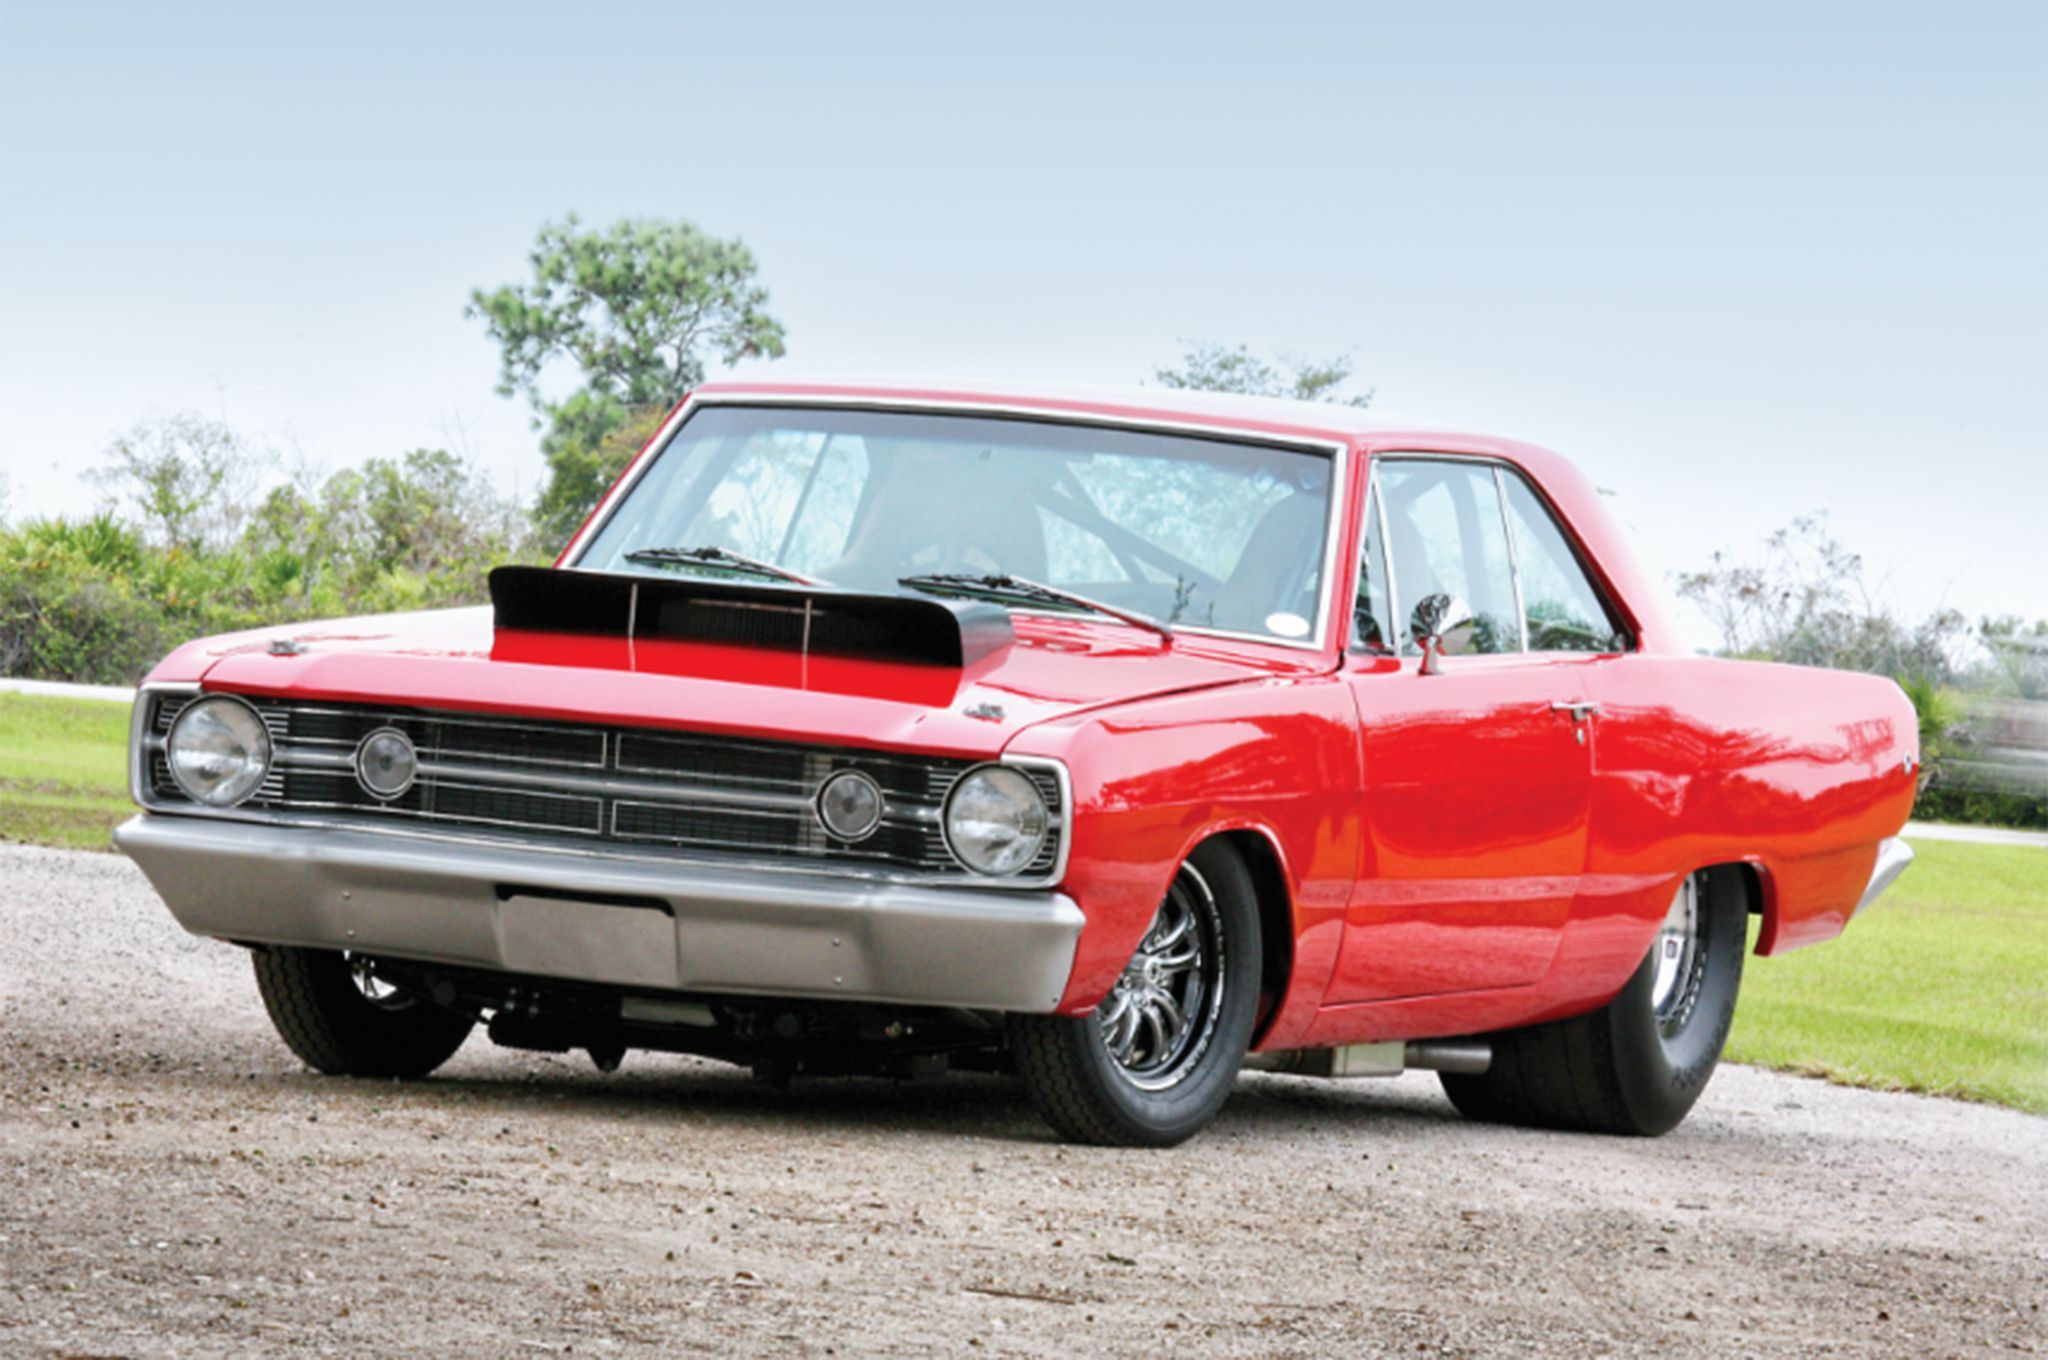 This 68 Dodge Dart Appears Ready For Drag Racing Are There Any